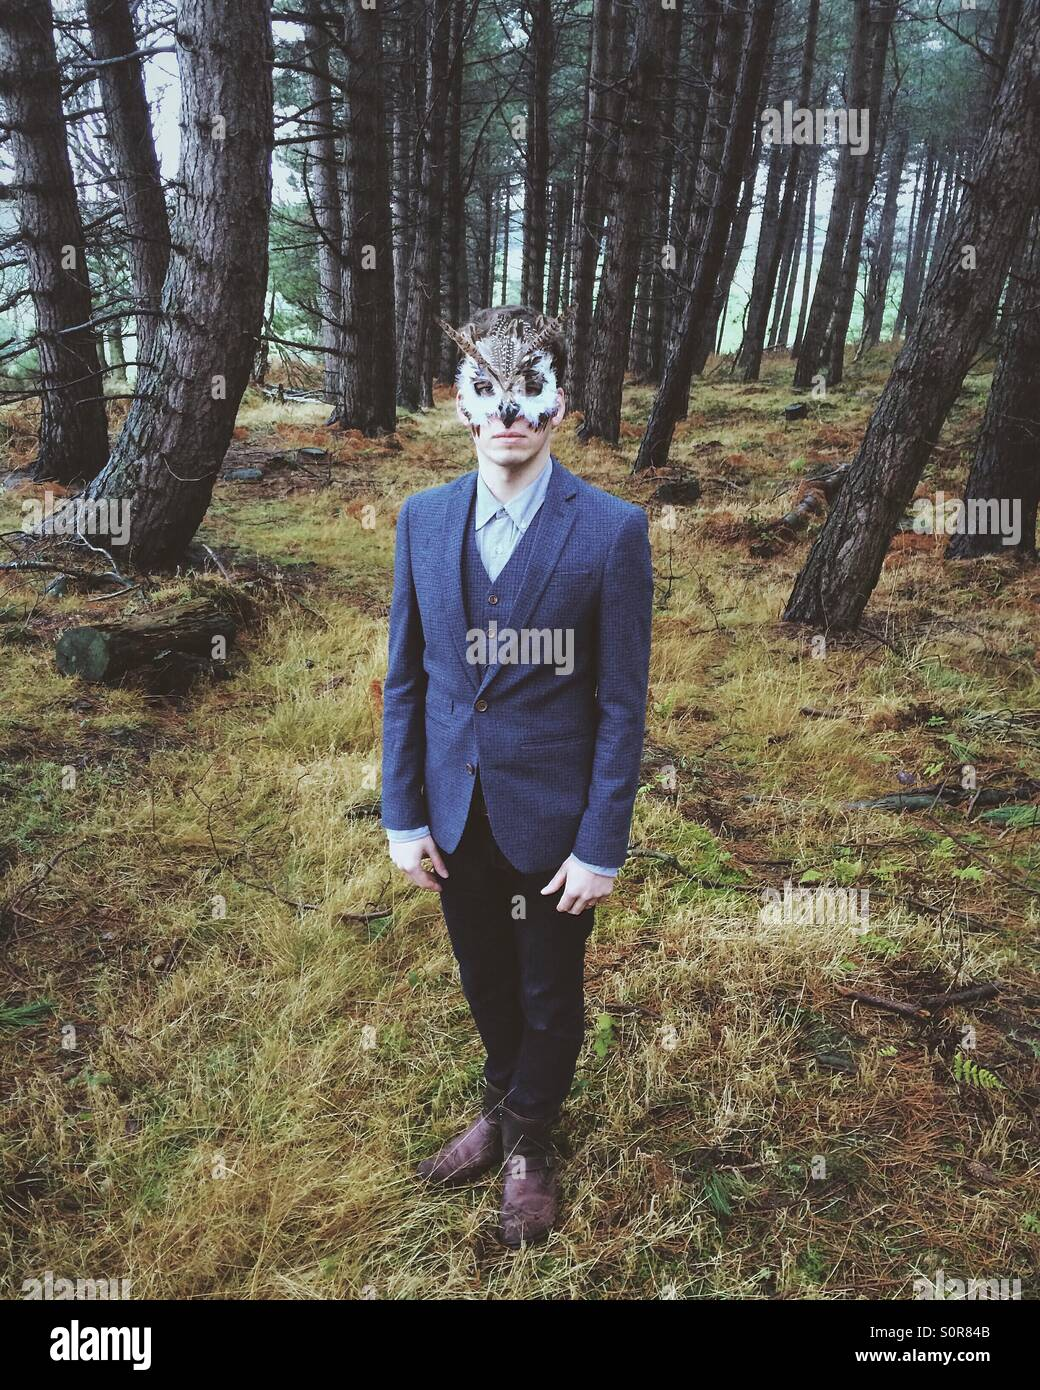 A young man wearing an owl masquerade mask in a forest. - Stock Image